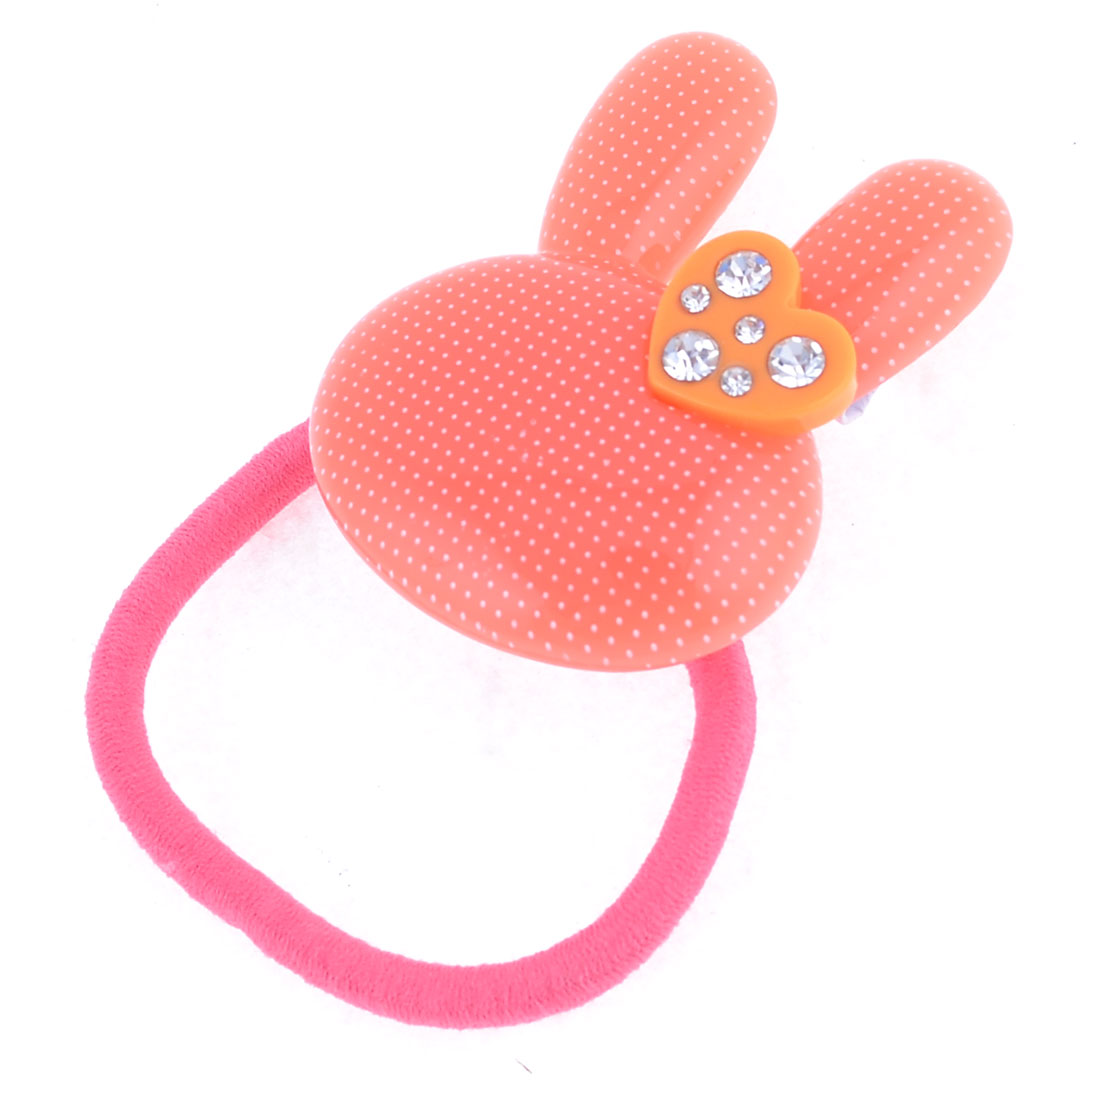 Rhinestone Inlaid Rabbit Shaped Decorate Elastic Ponytail Holder Hair Band